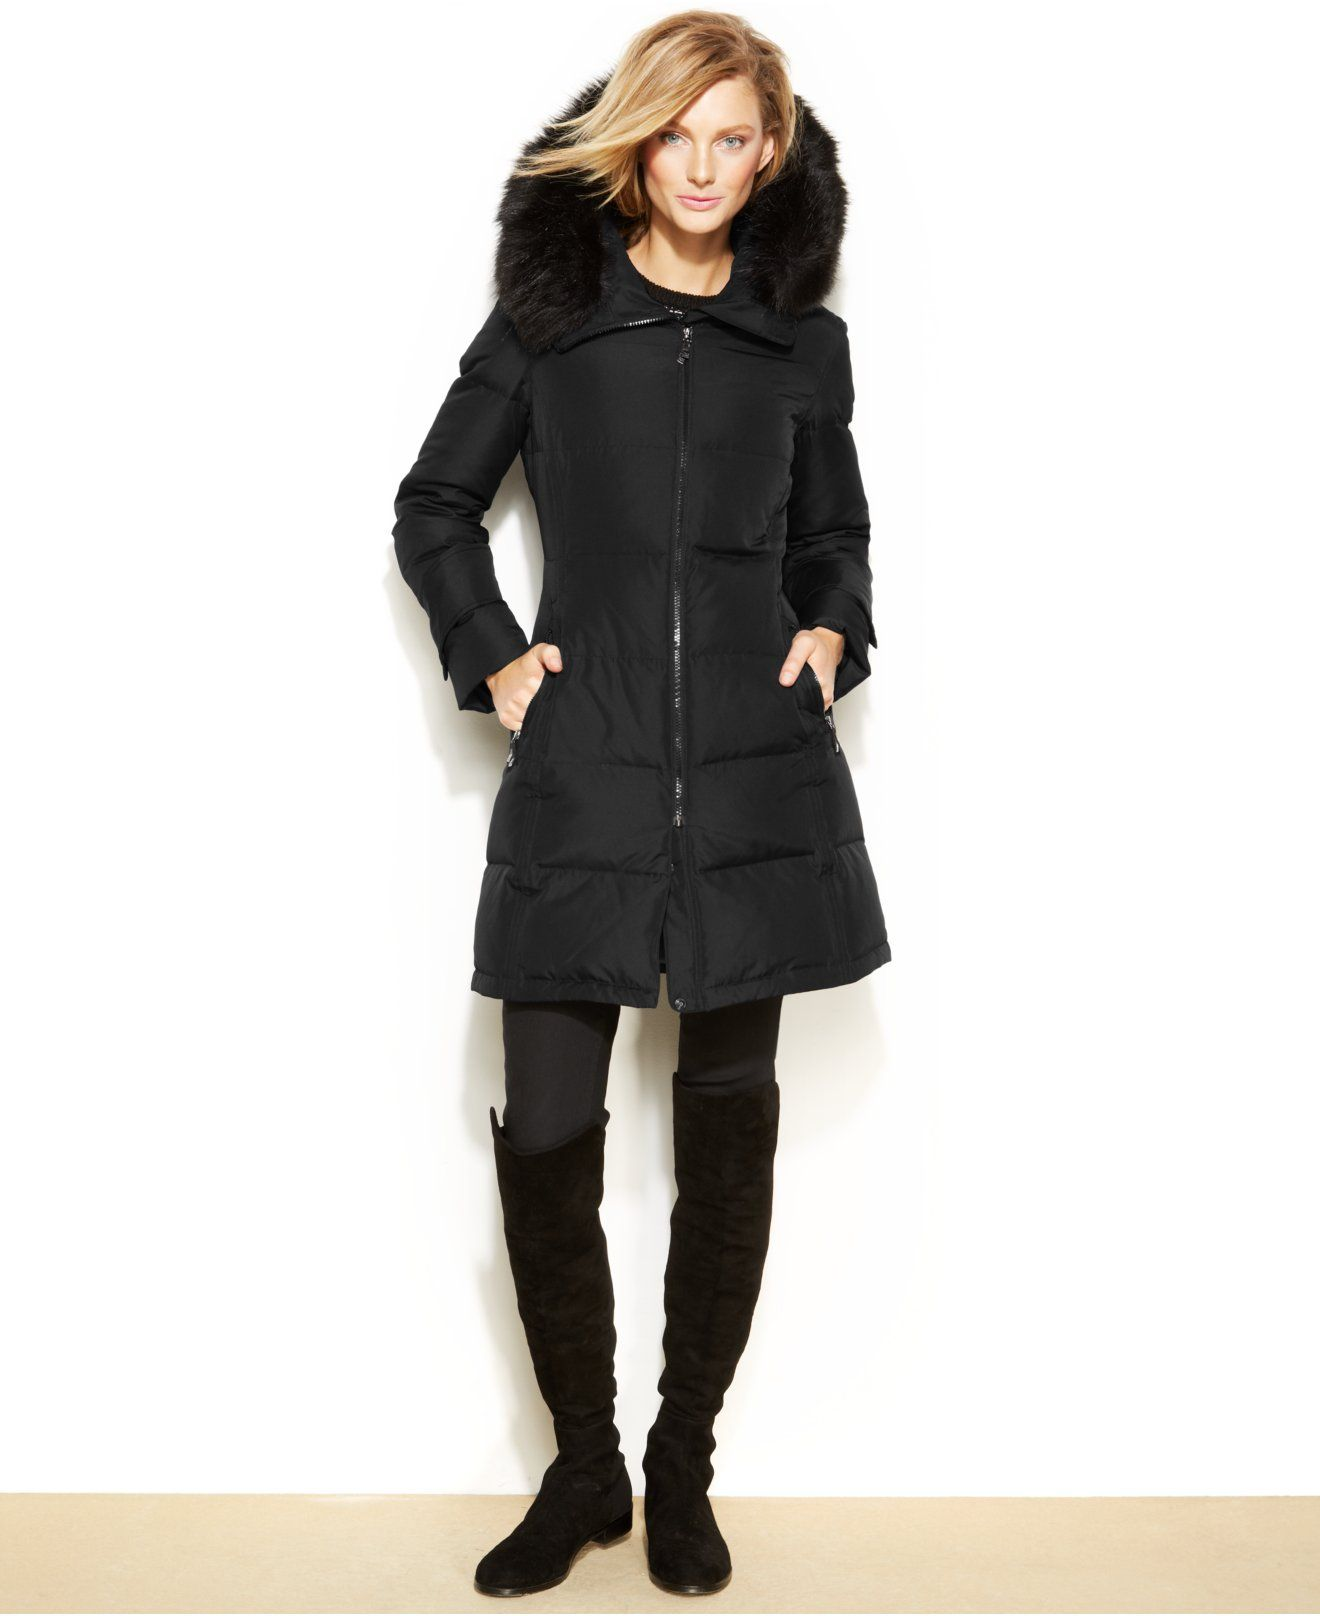 aa20e219d Calvin Klein Hooded Faux-Fur-Trim Quilted Down Puffer Coat - Coats - Women  - Macy's